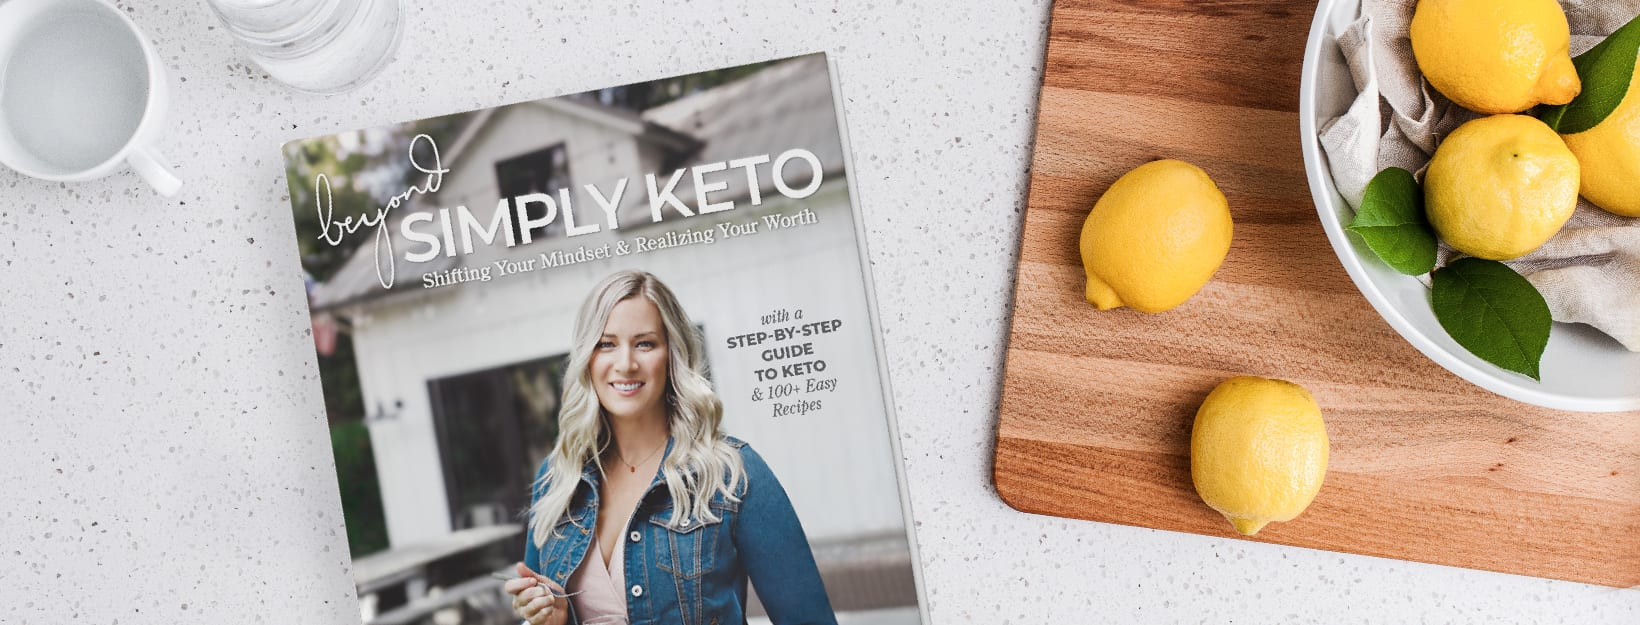 Cover of Beyond Simply Keto cookbook written by Suzanne Ryan.